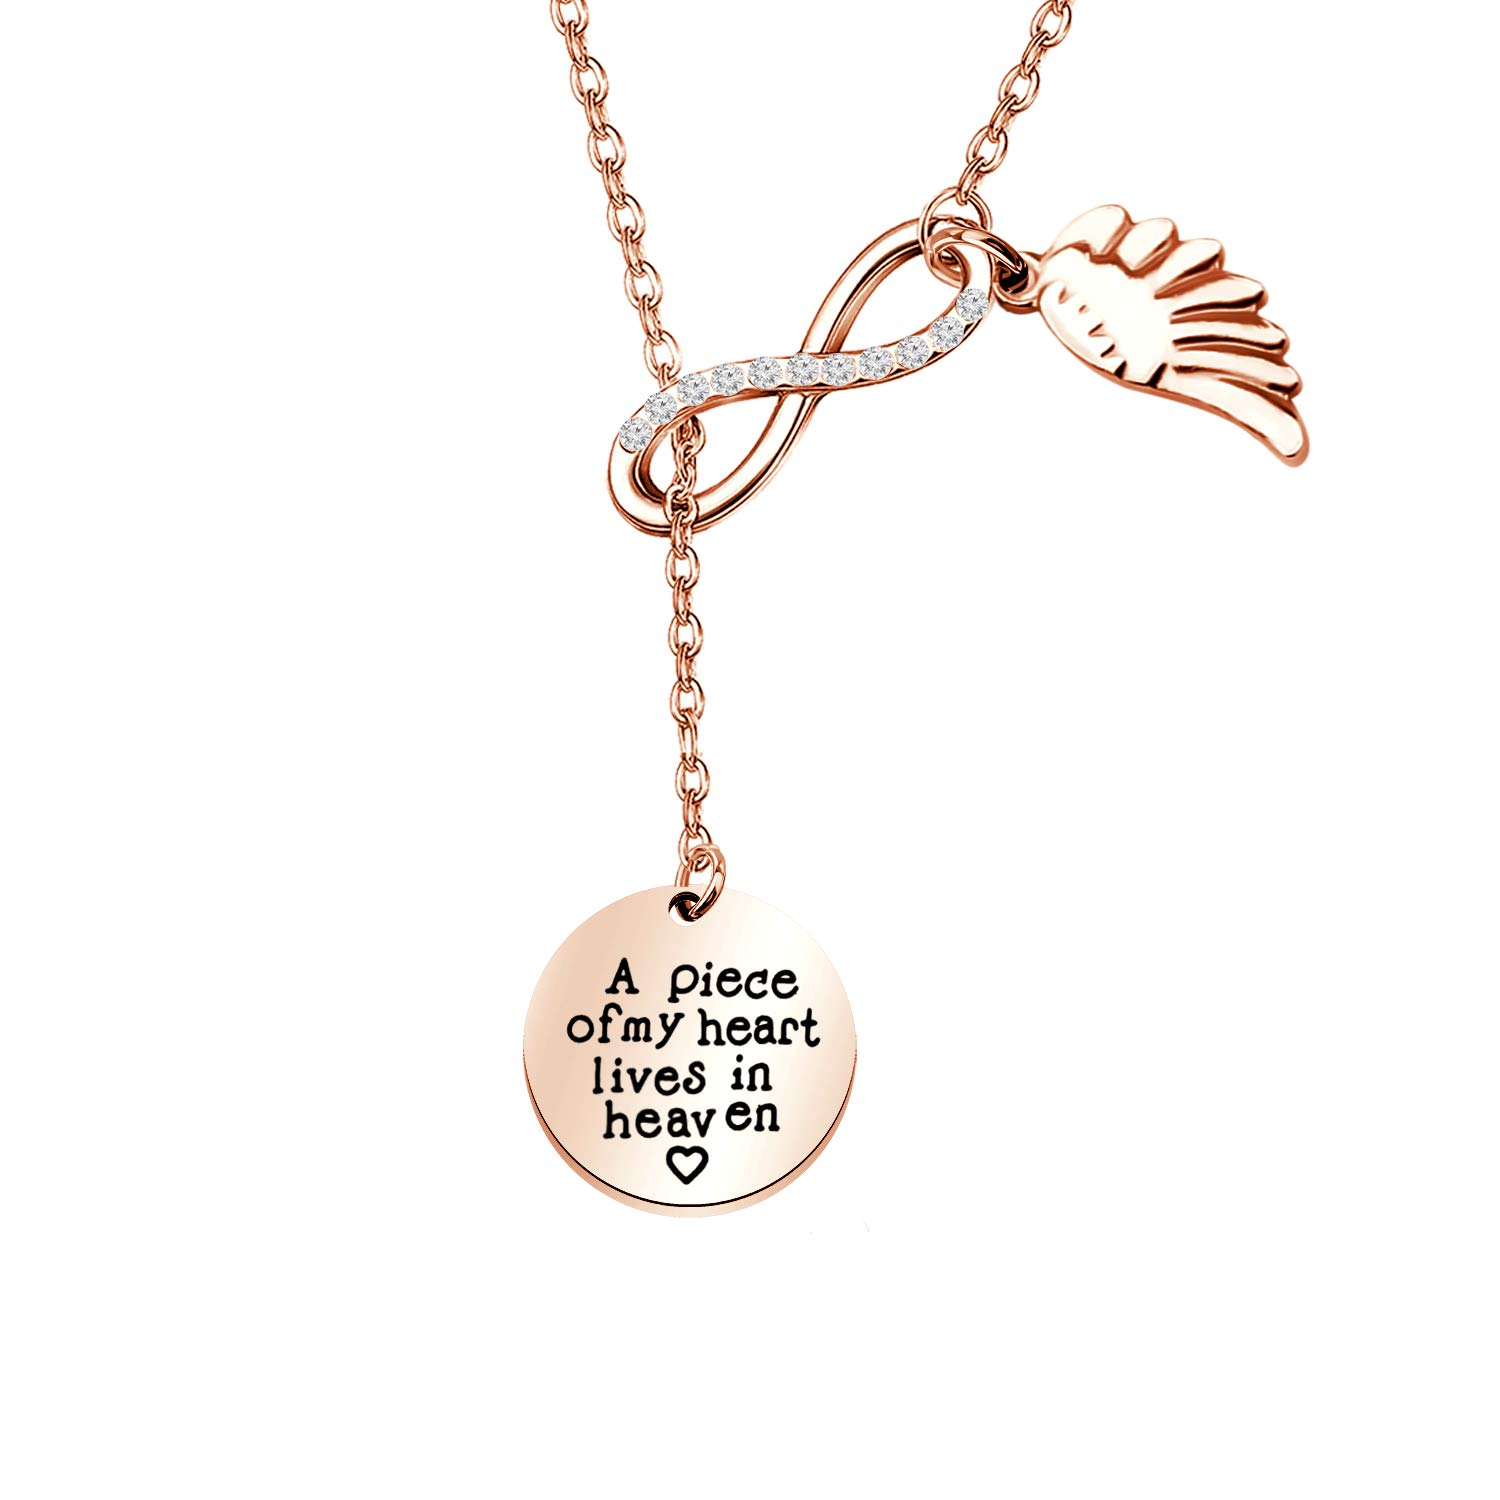 Memorial Jewelry Sympathy Gift A Piece of My Heart Lives In Heaven Lariat Y Necklace Loss Jewelry Gift